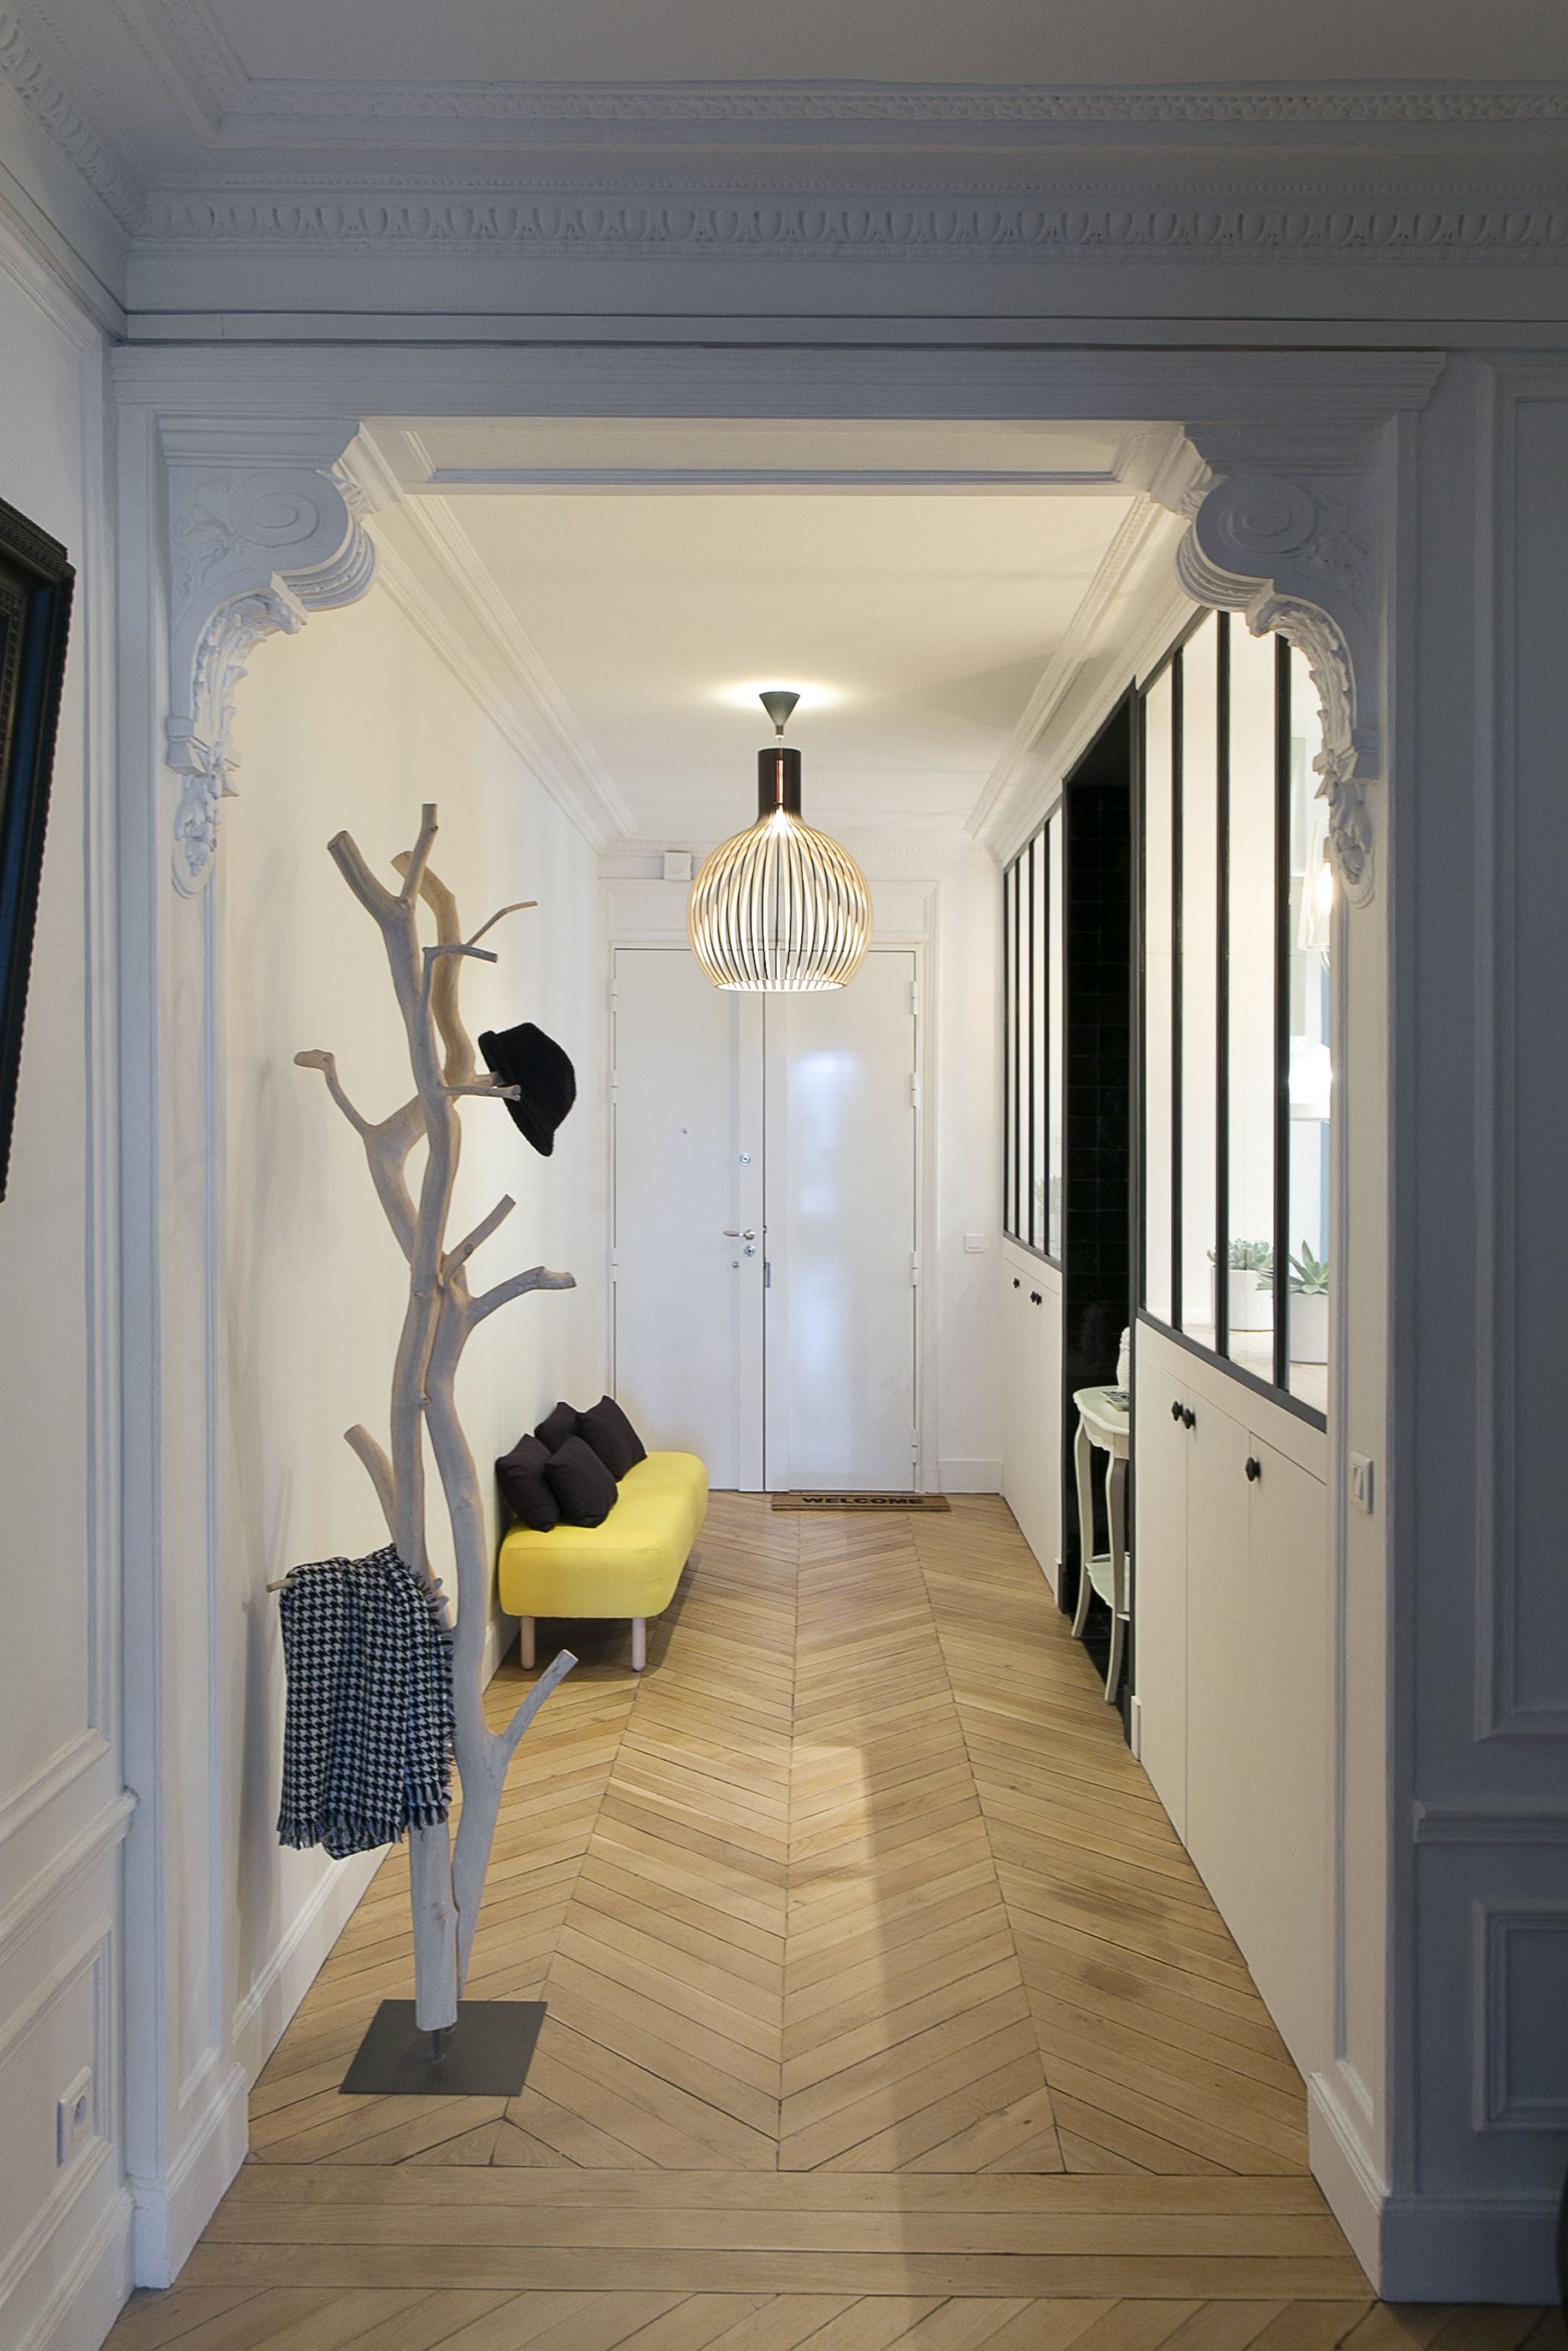 Inspiration d co pour l 39 entr e appartement maison - Entree d appartement ...